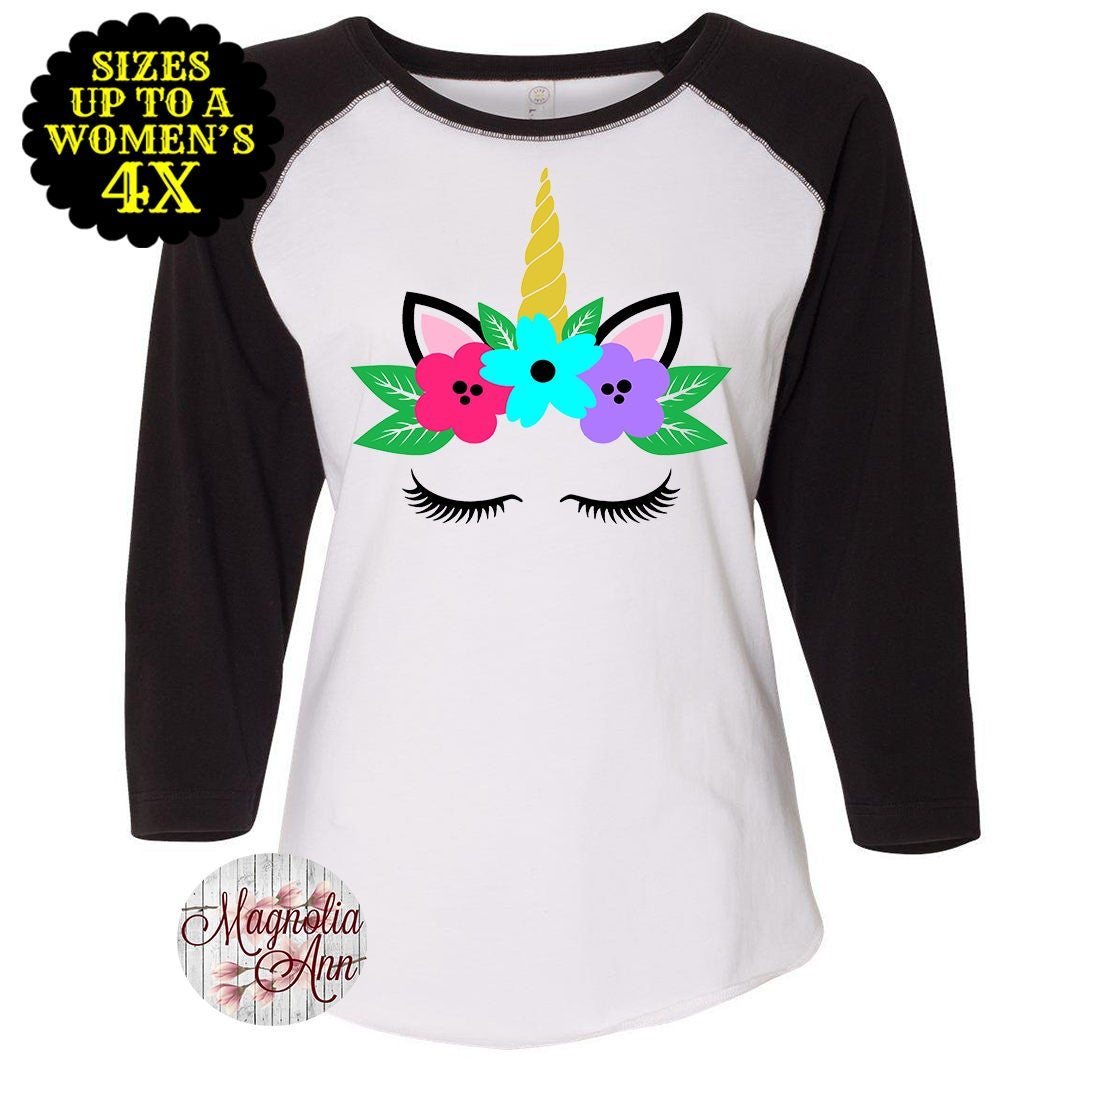 5af6ad78 Unicorn Baseball Raglan T Shirt, Unicorn Shirt, Plus Size Unicorn ...